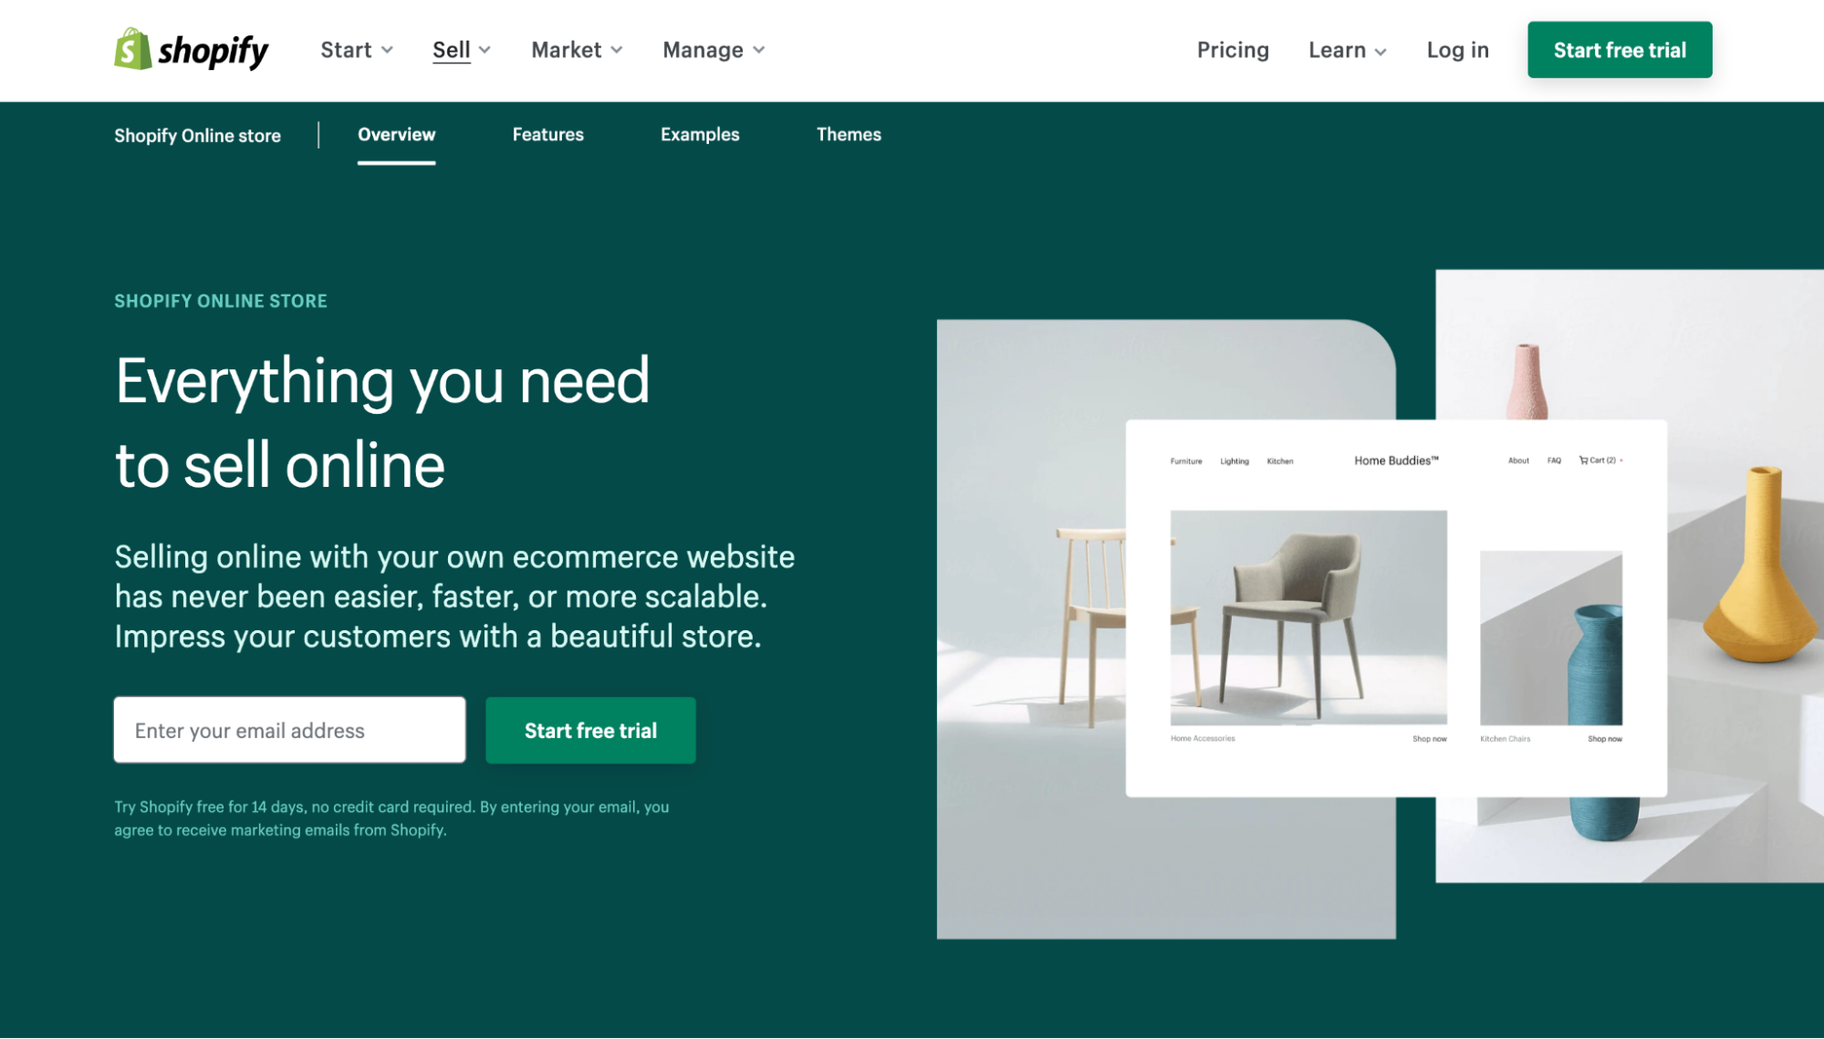 Is Shopify the best ecommerce platform?